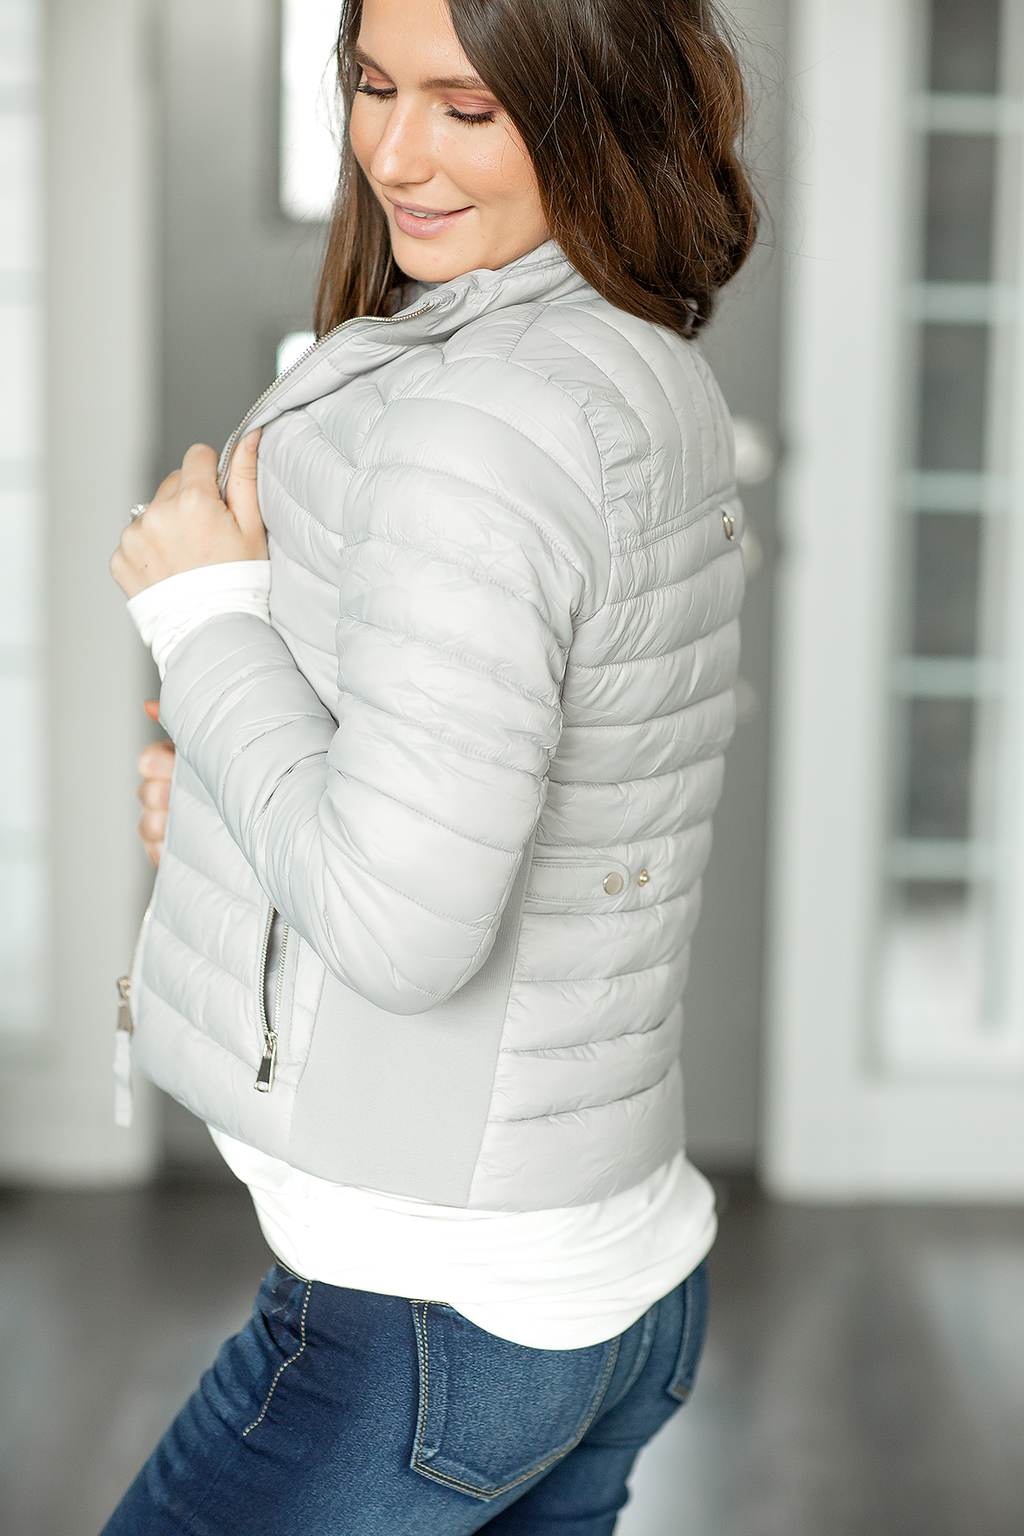 My Way Puffer Jacket in Gray